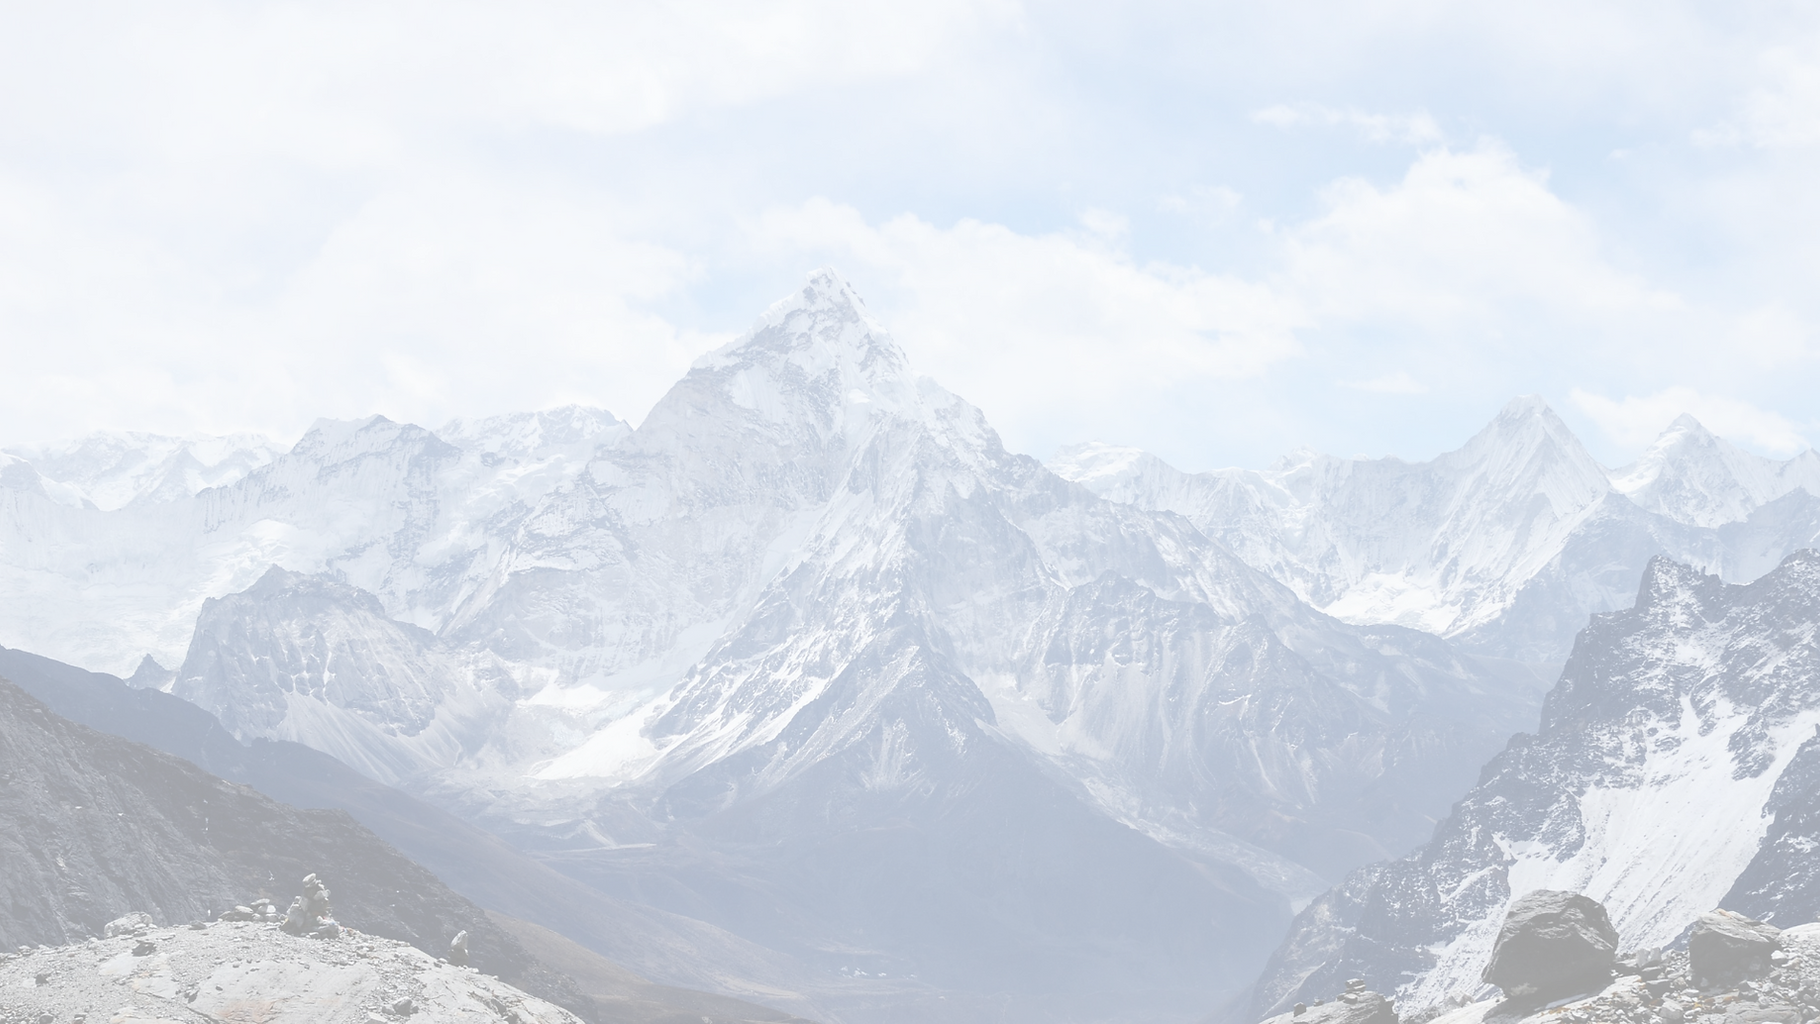 mountain picture vague.png